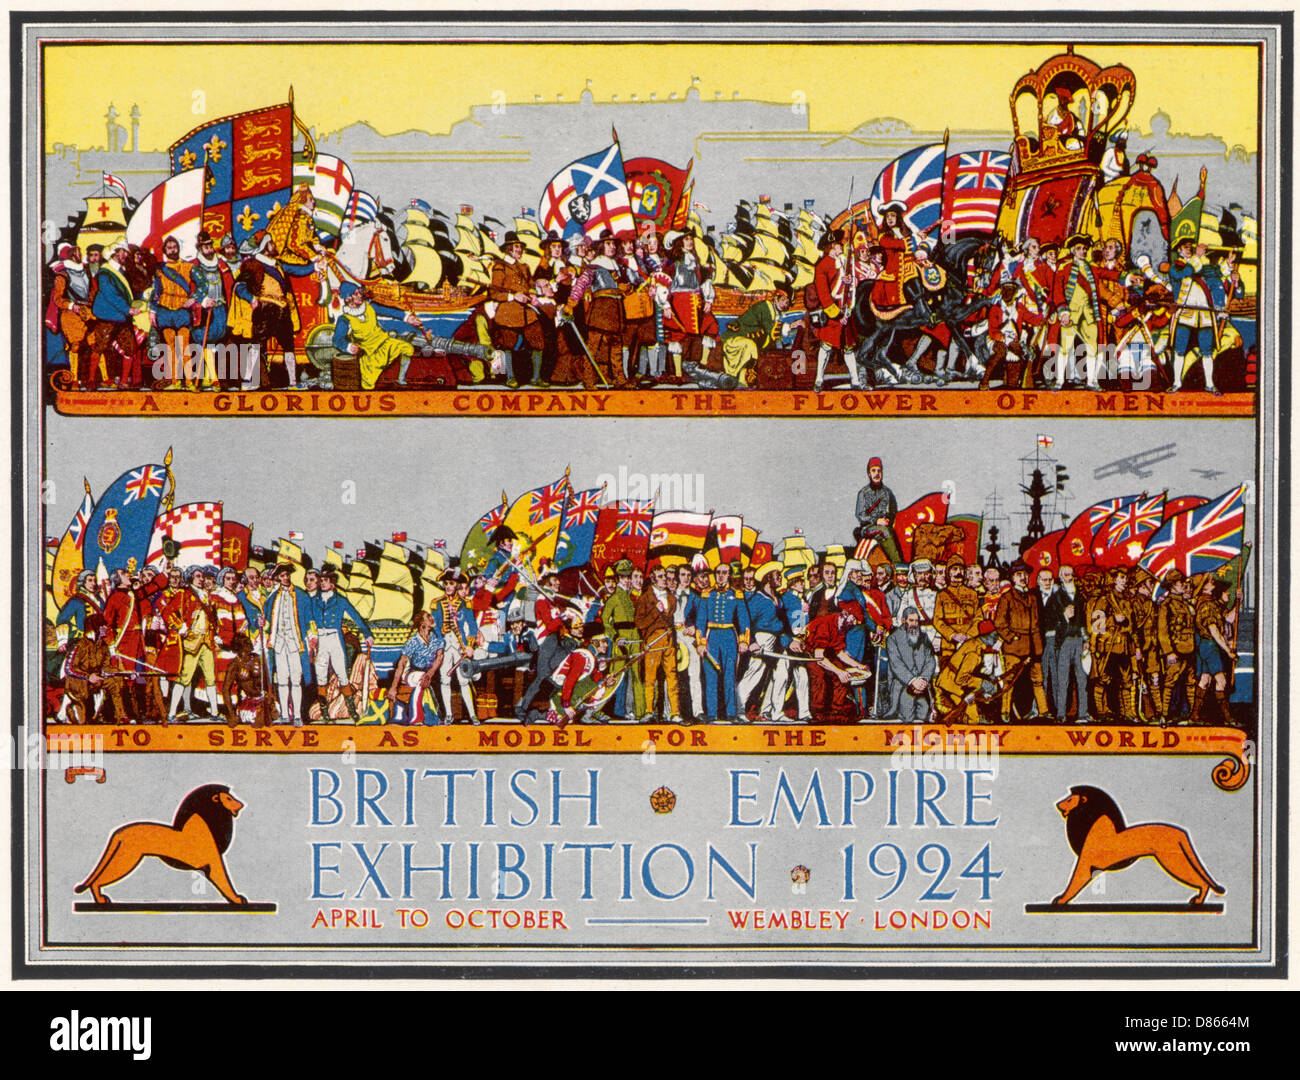 Poster Advertising The British Empire Exhibition 1924 Stock Photo